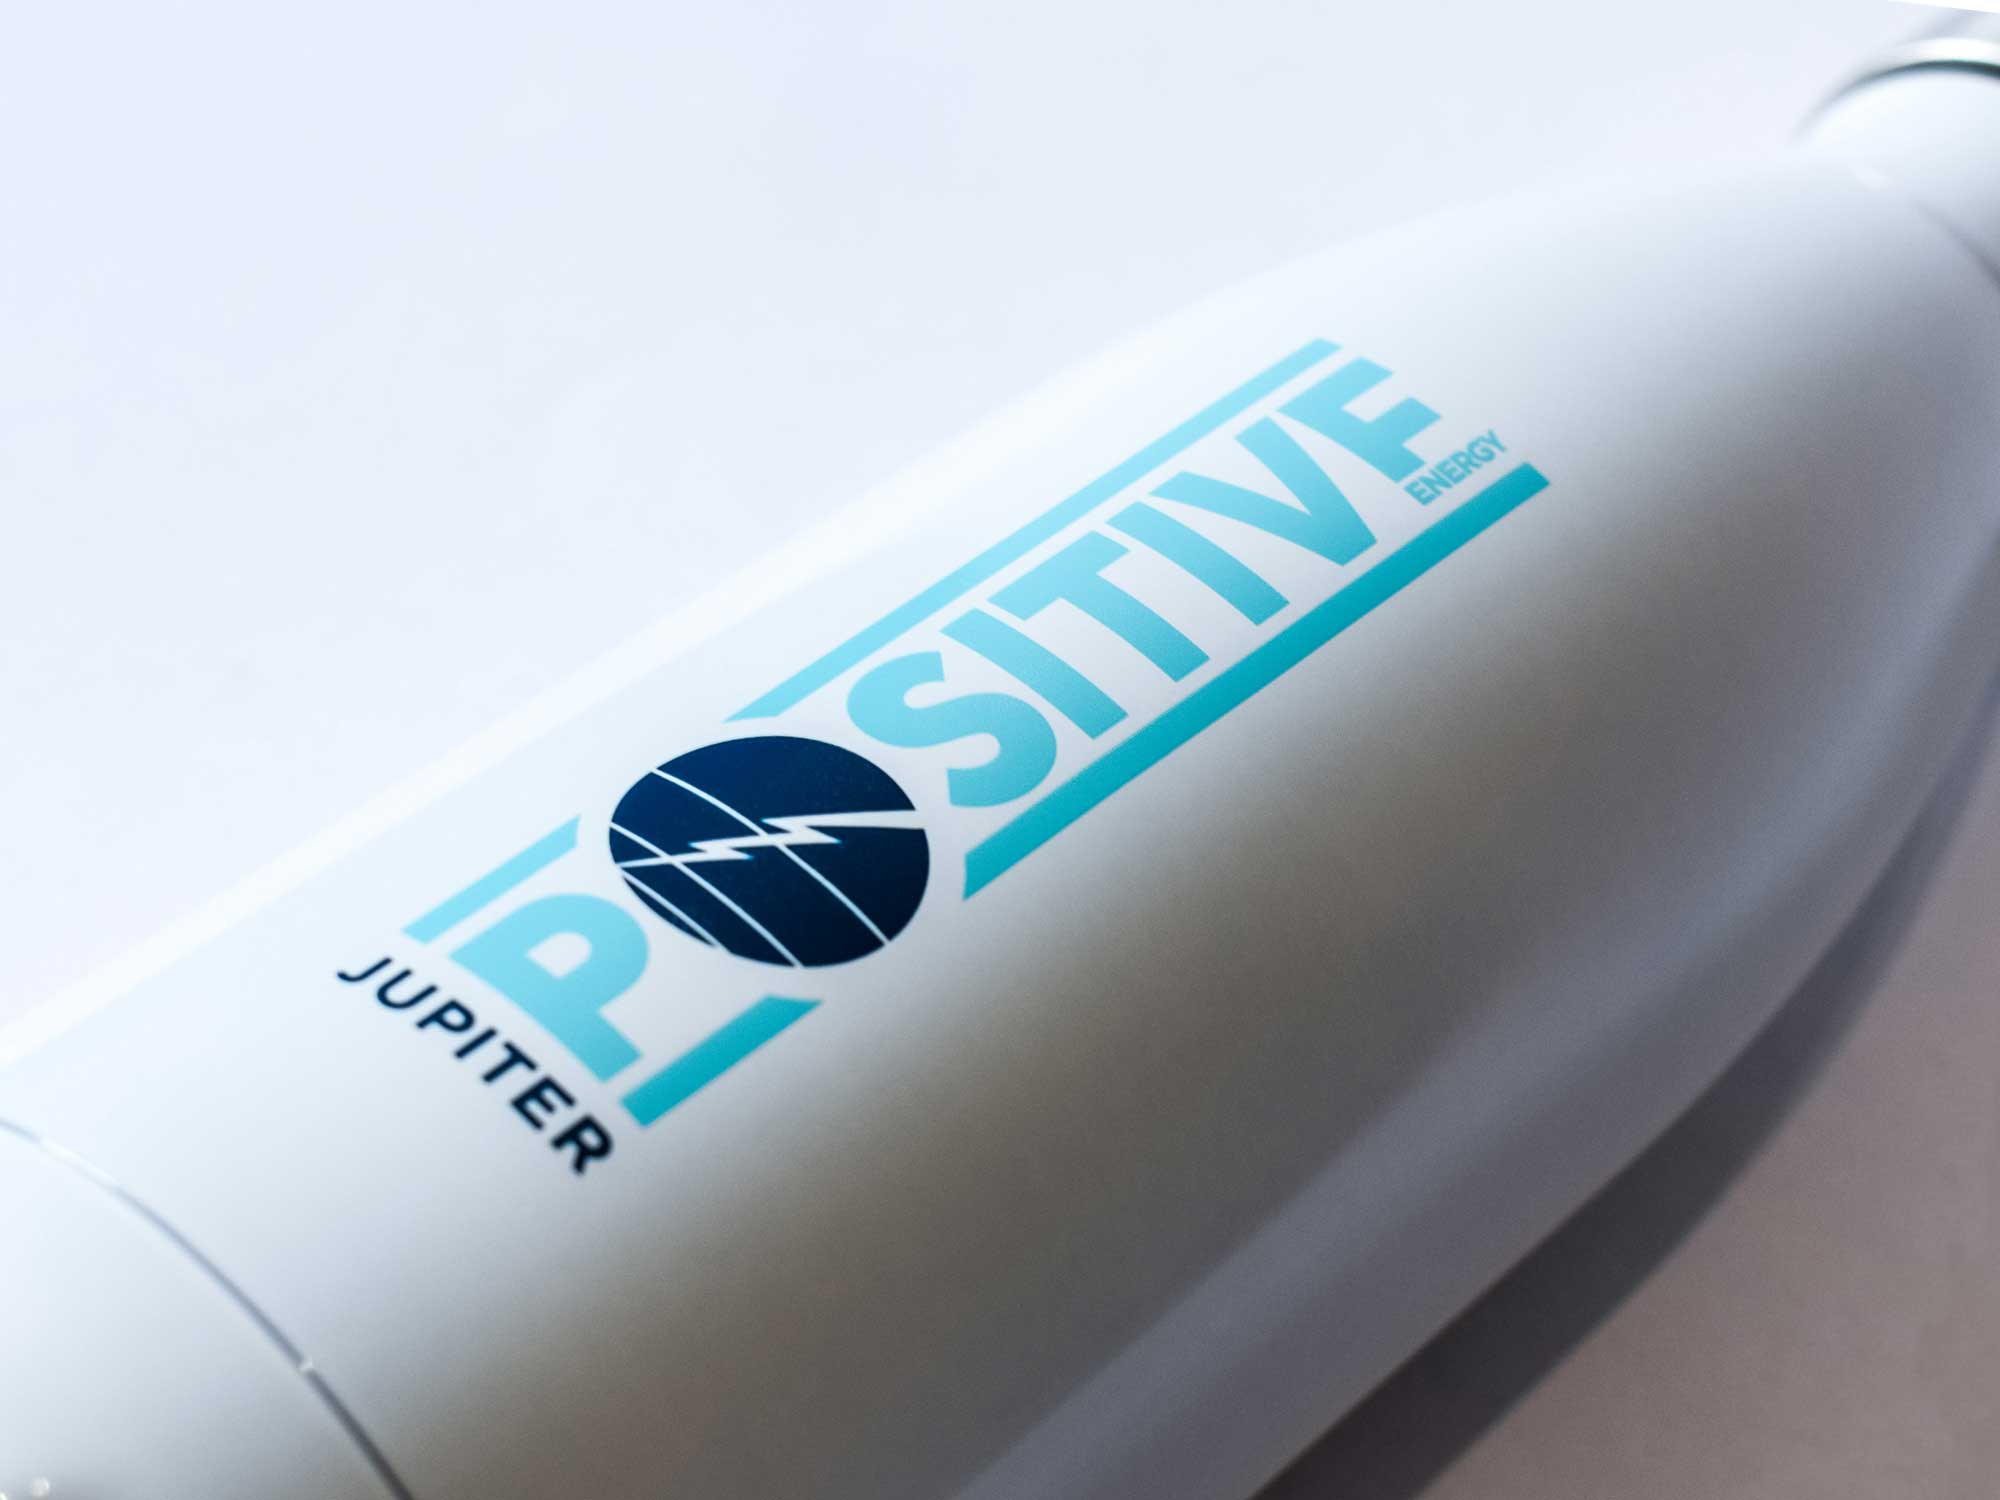 Branded product design swell bottle by studio forum